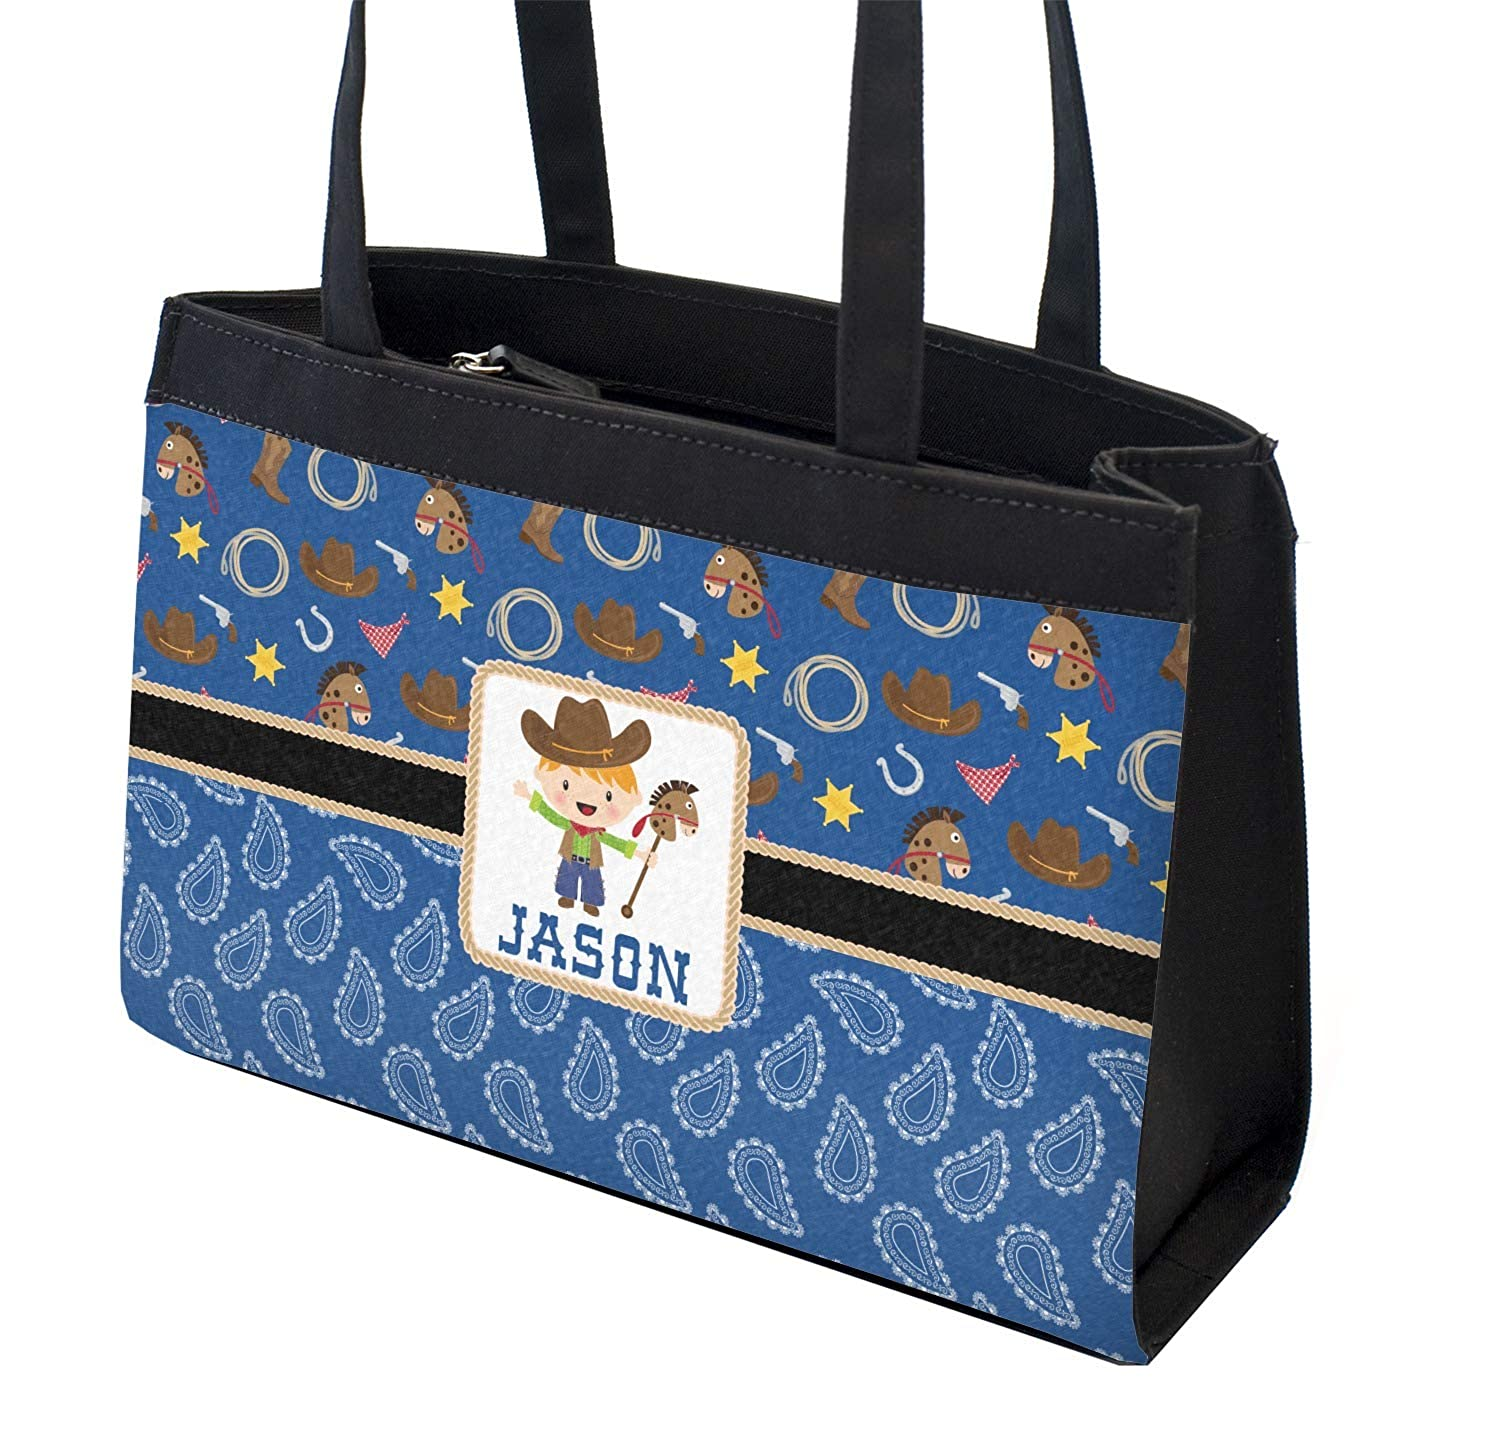 Personalized Front Blue Western Zippered Everyday Tote